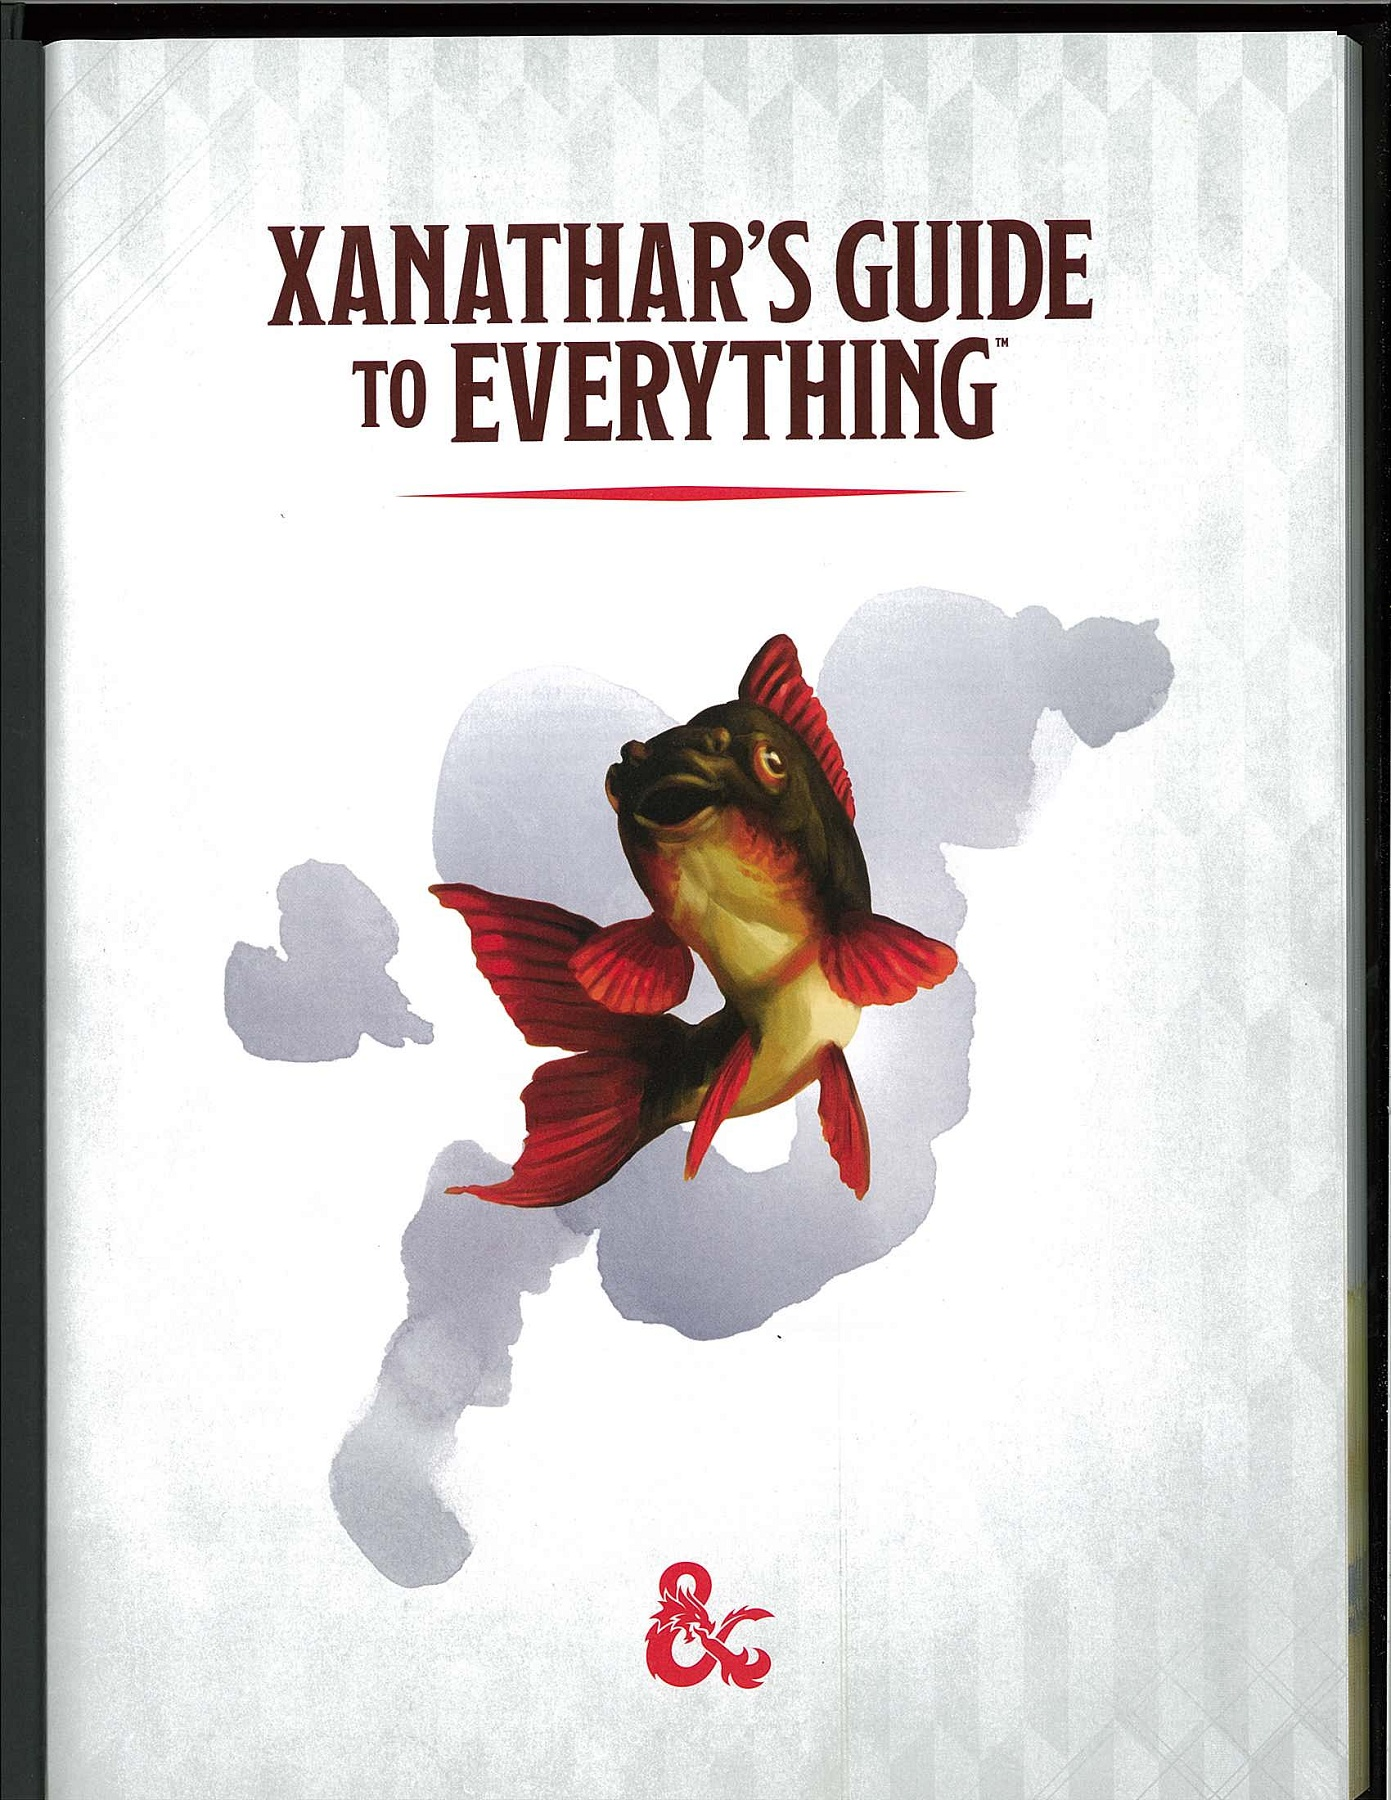 Xanathar's Guide To Everything Pages 101 - 150 - Text